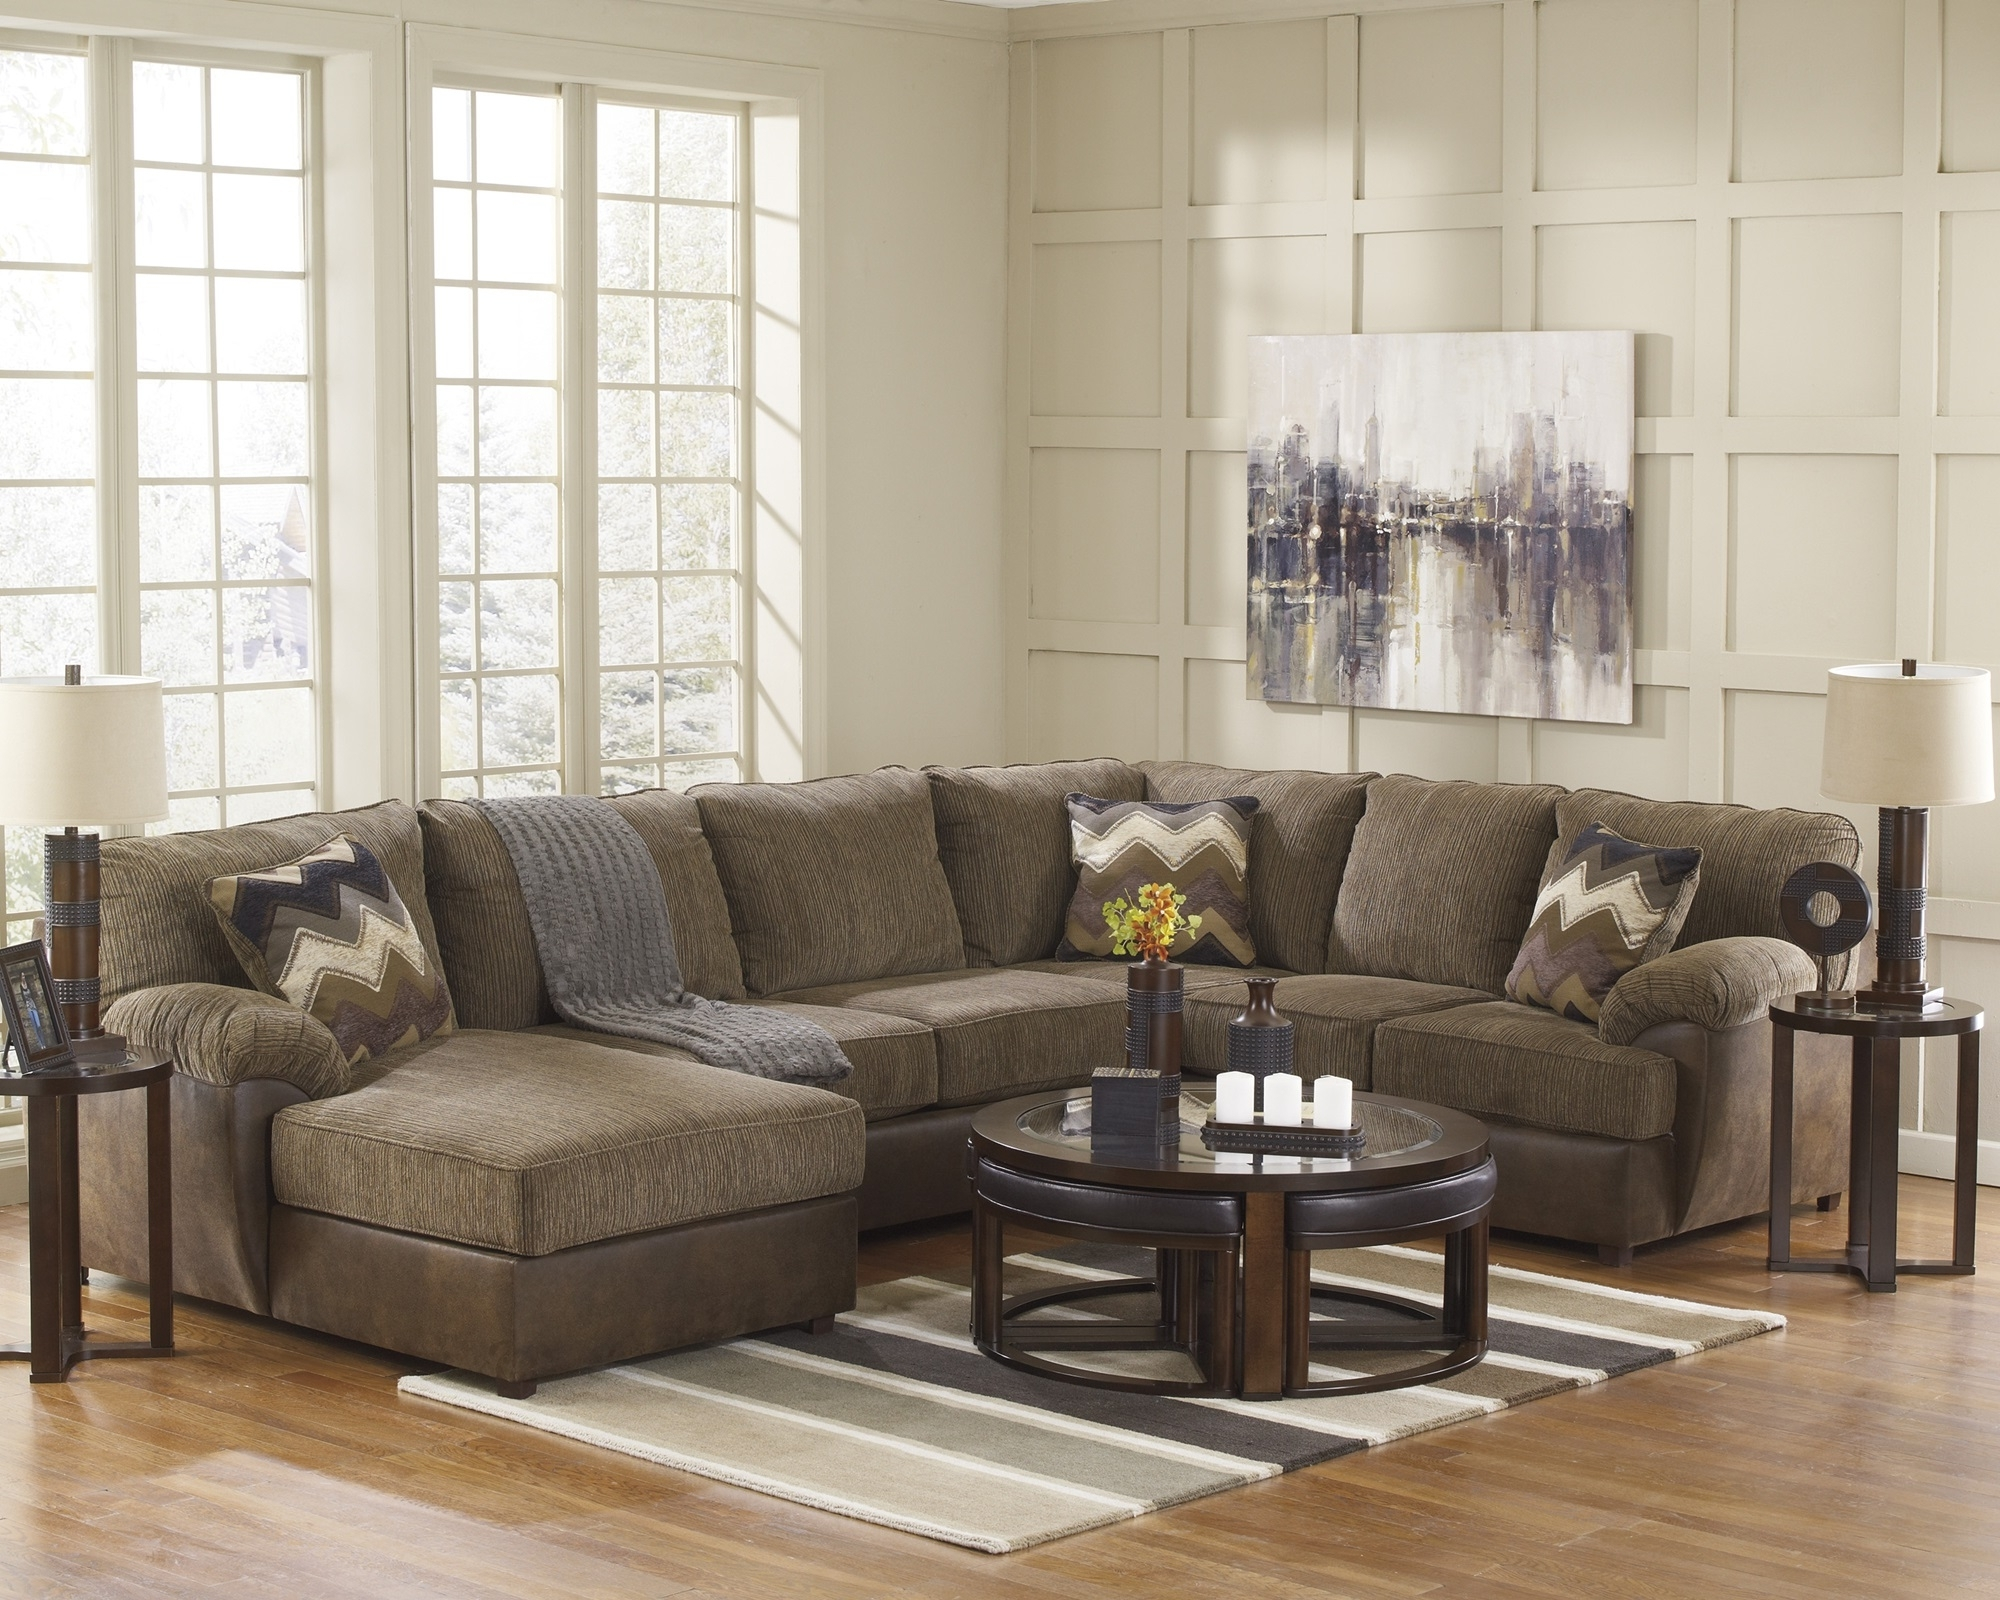 Living Room Design : Hickory Brand Furniture Chair Outlet King Within Most Recent Hickory Nc Sectional Sofas (View 7 of 15)